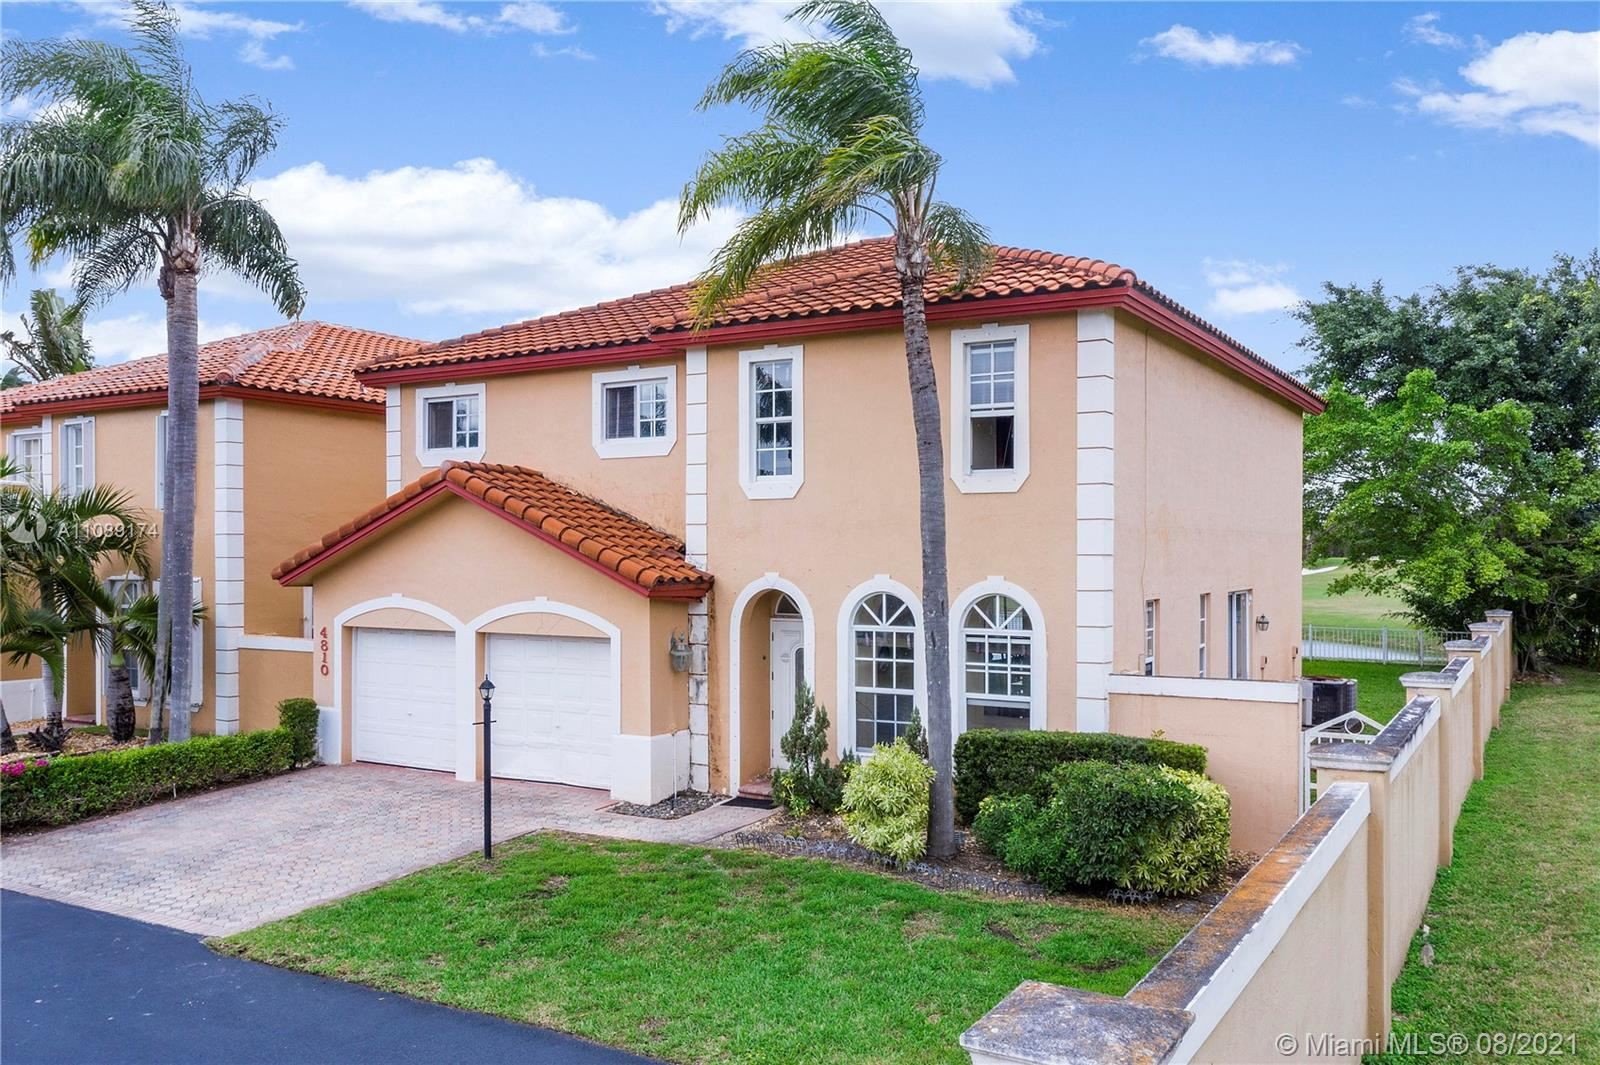 4810 NW 104th Ave, Doral, FL 33178 - #: A11089174